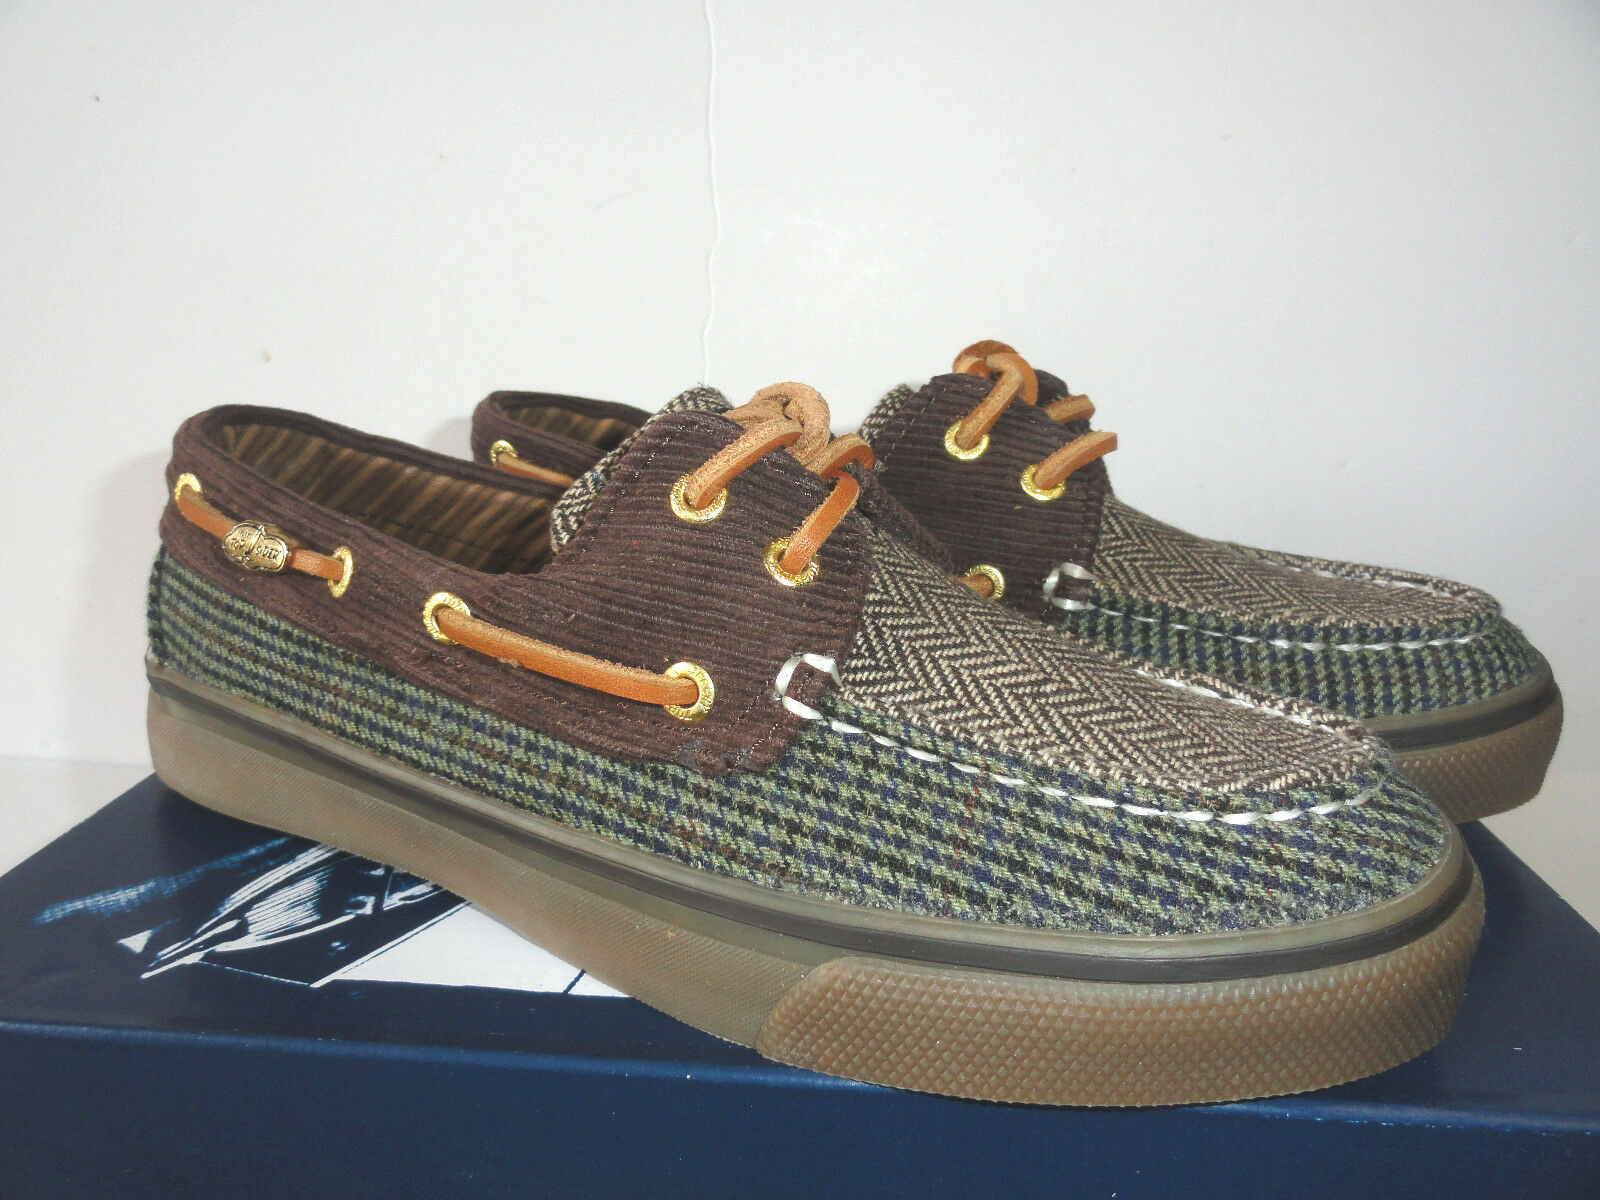 Women's Sperry Top-Sider Bahama Boat shoes Brown Hound  Cord